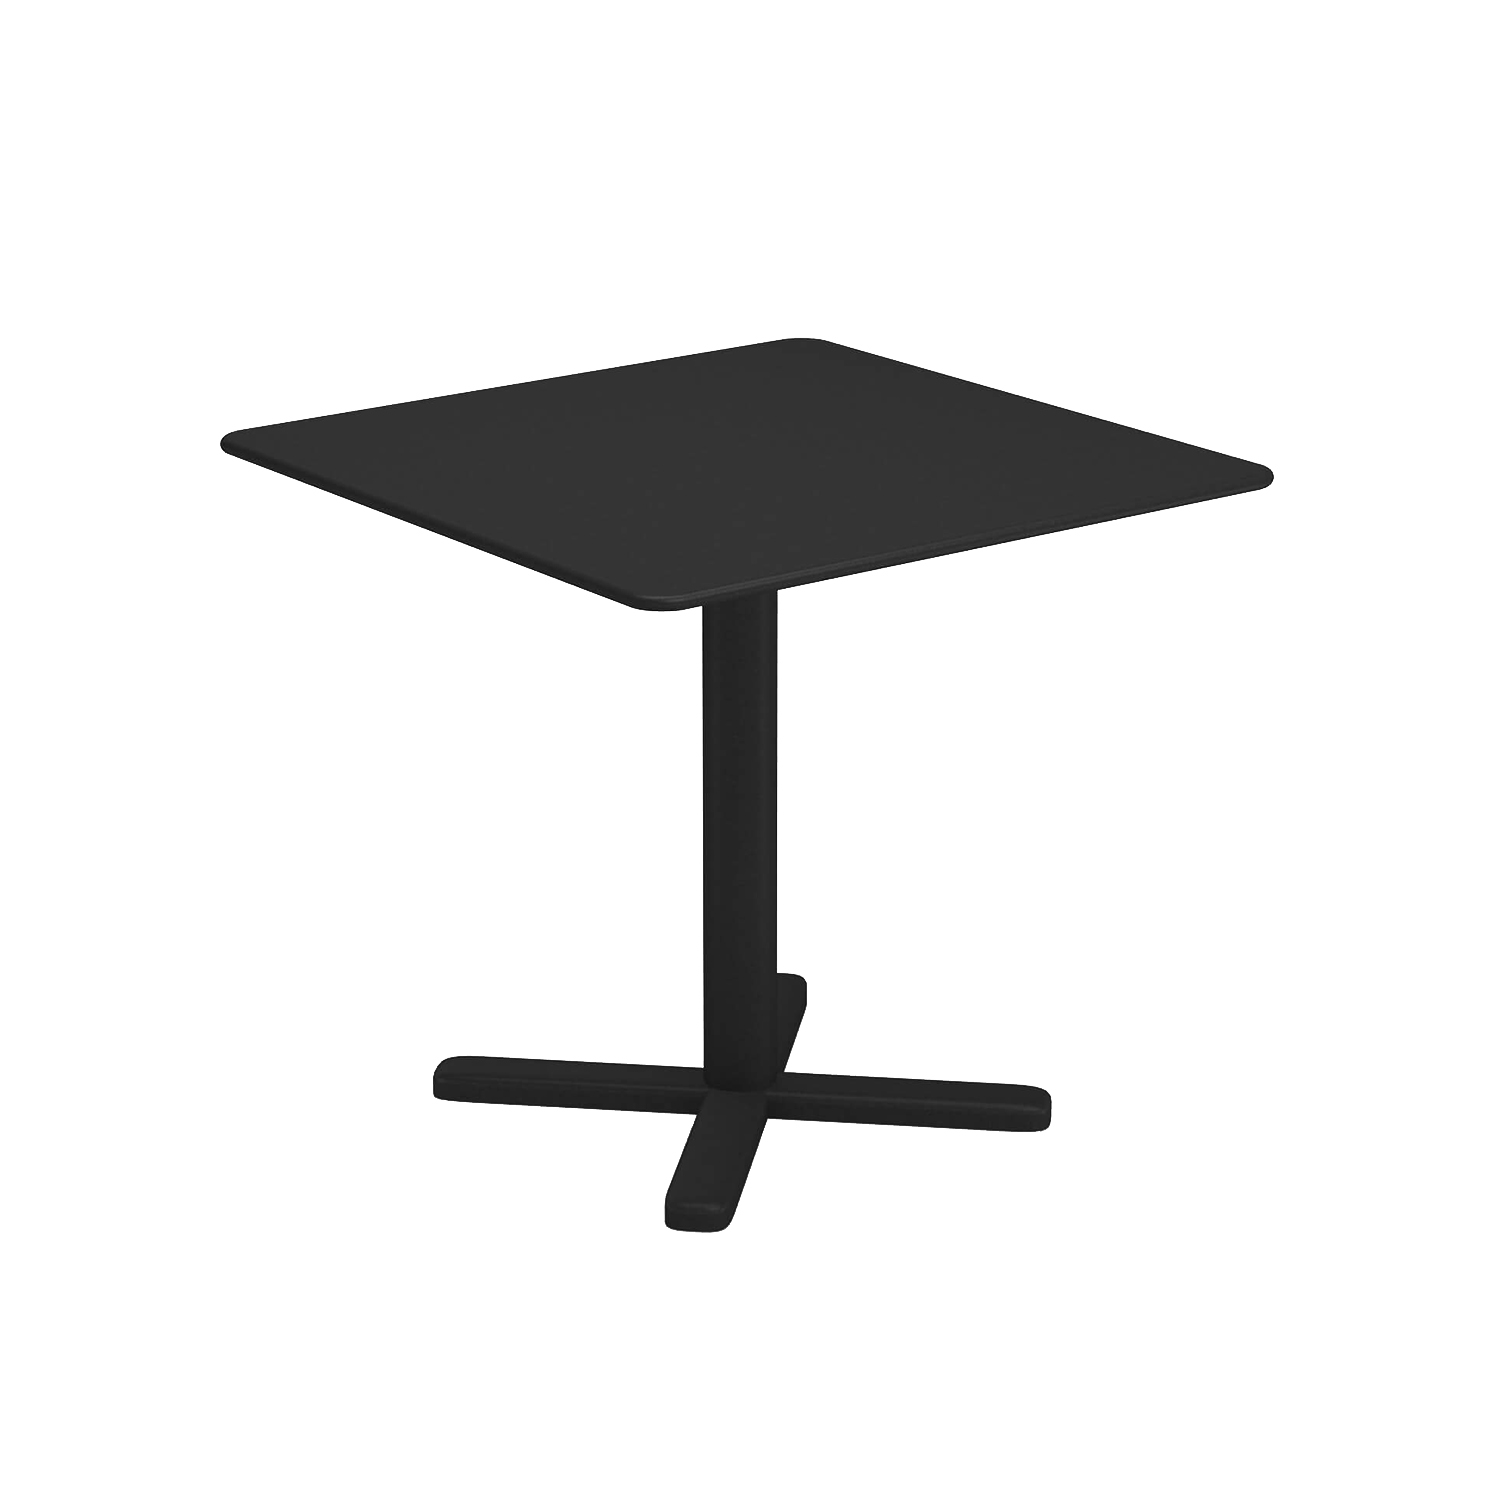 Darwin Folding Square Table - The ergonomic proportions and lightness of structural lines guarantee both comfort and adaptability. Darwin is a steel collection, which revisits classic themes, in a delicate metal sheet mesh placed within a contemporary geometric structure. The Darwin range consists of chairs, armchairs, tables, stool and counter table, sofa, lounge chair and coffee table. Defined by its exceptional style, Darwin is suited to all kinds of furnishing contexts. | Matter of Stuff